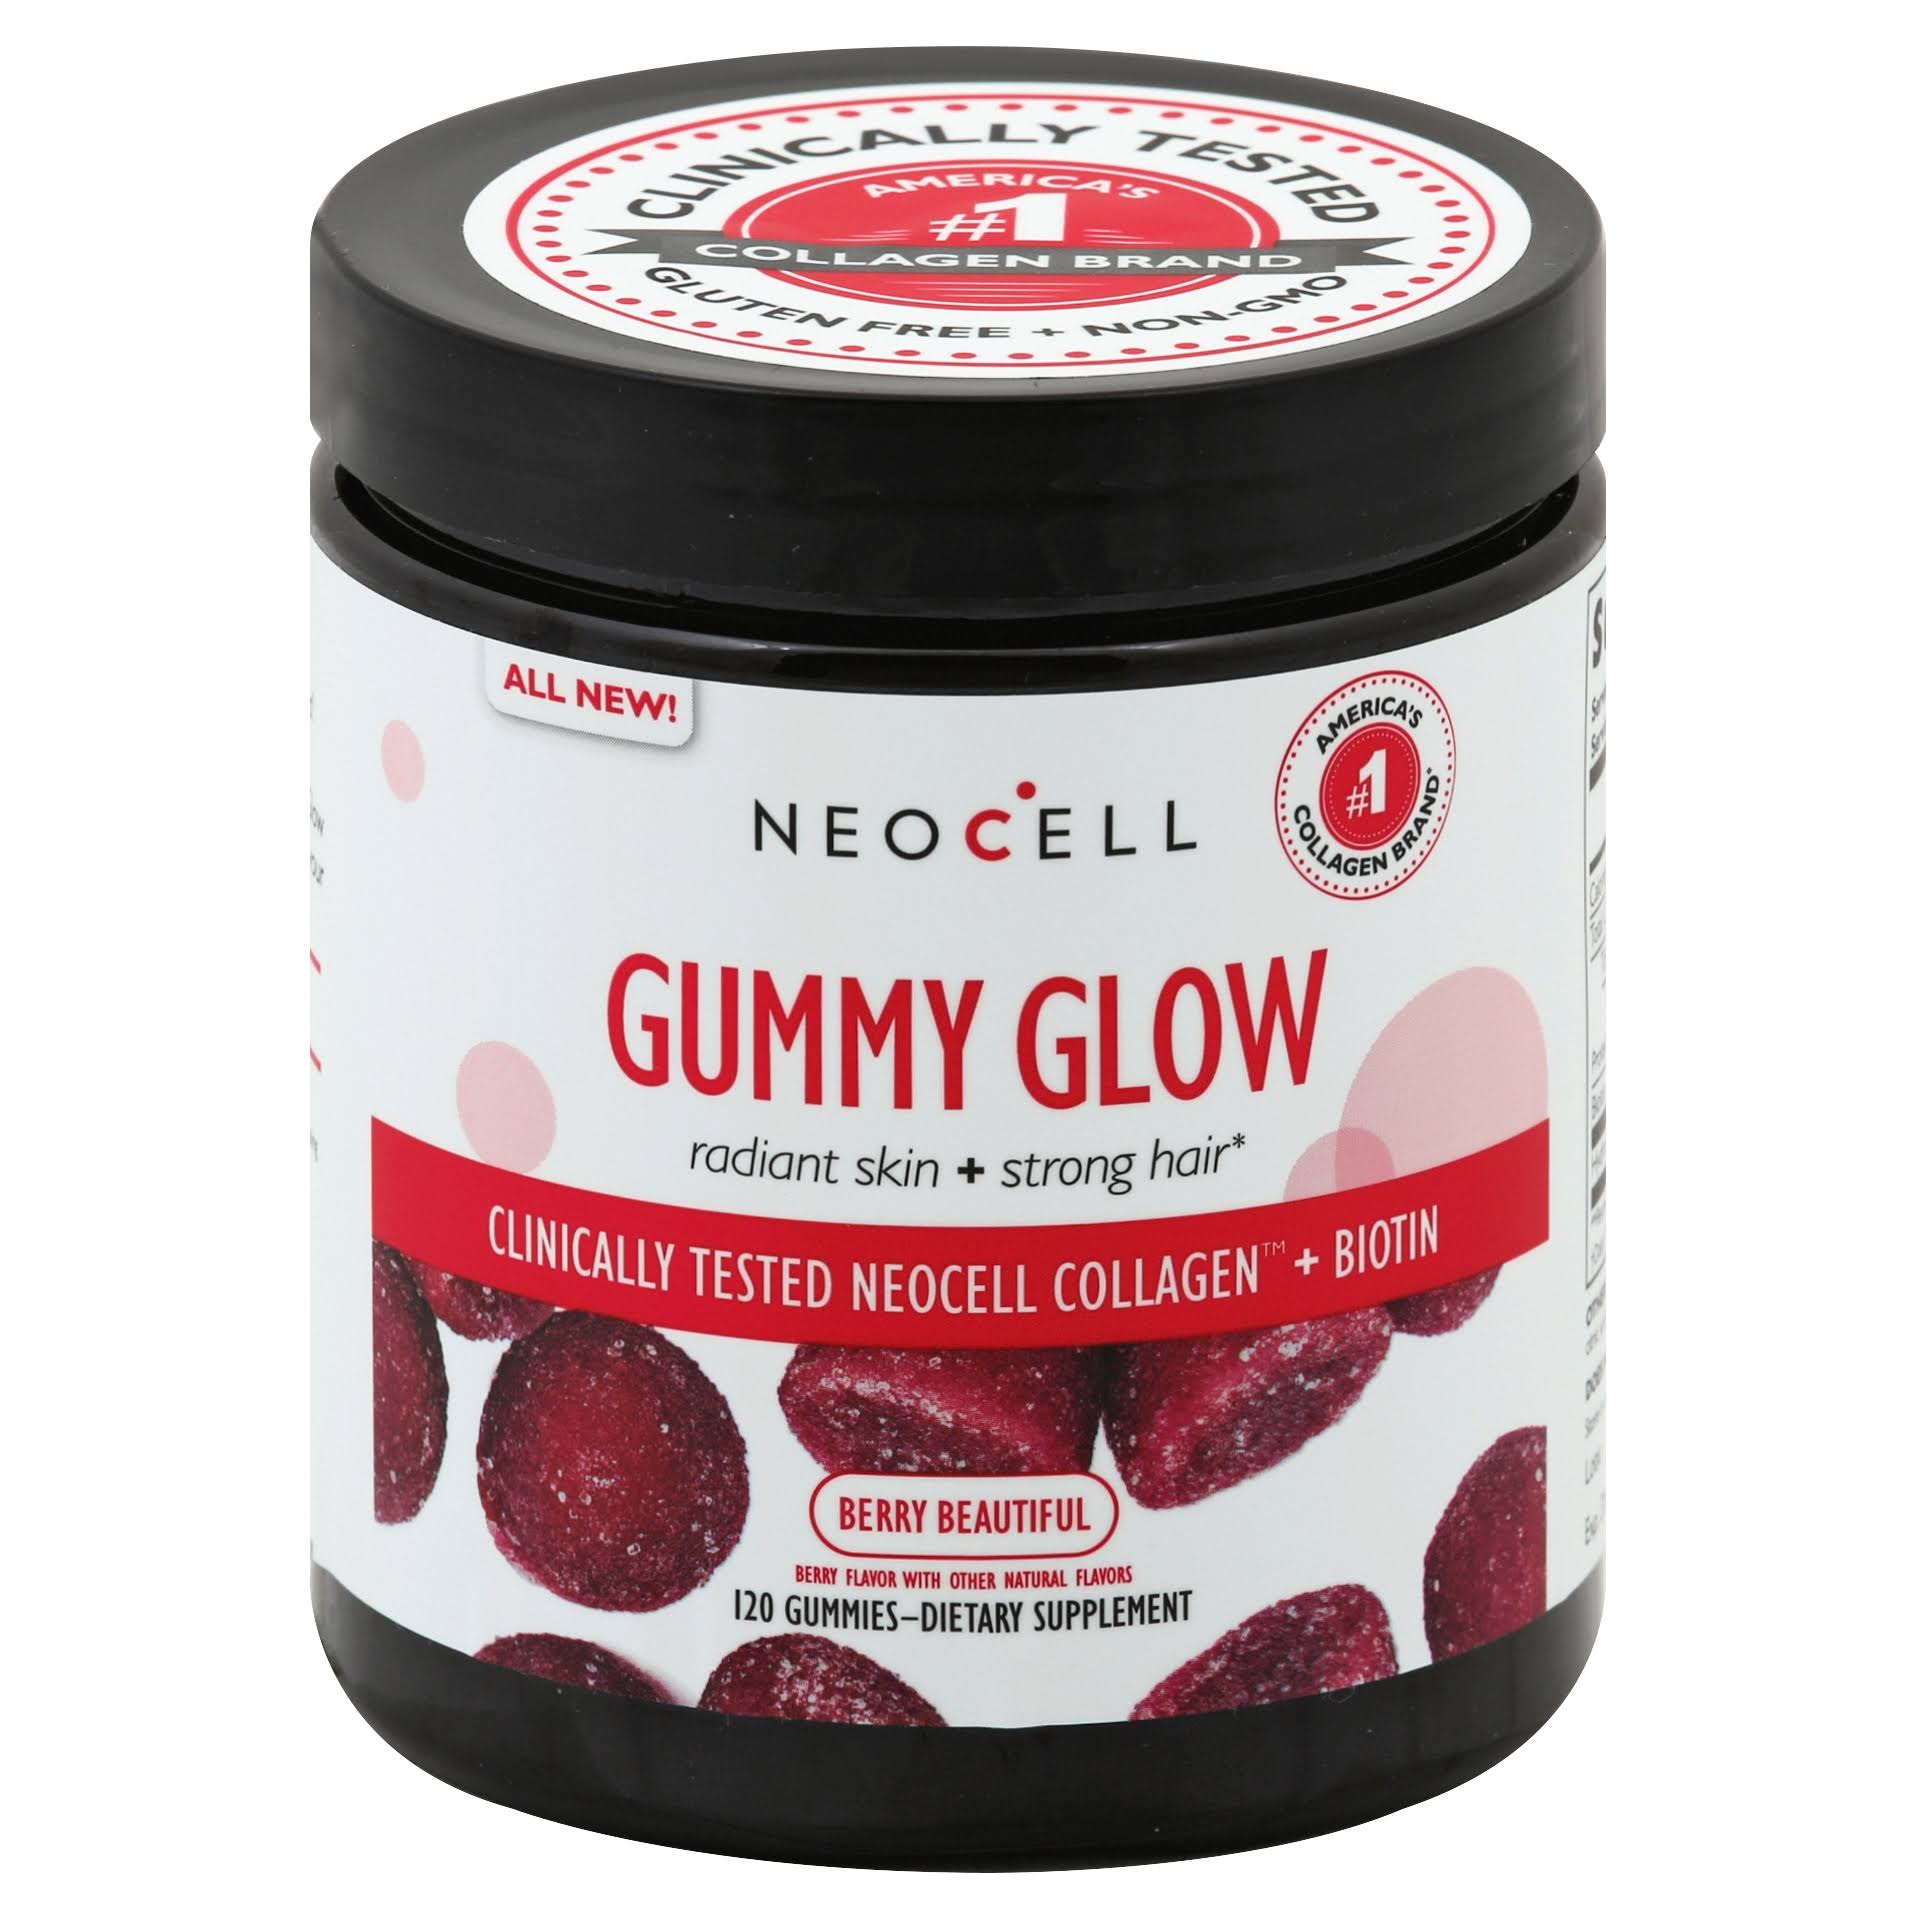 Neocell Gummy Glow, Gummies, Berry Beautiful - 120 gummies